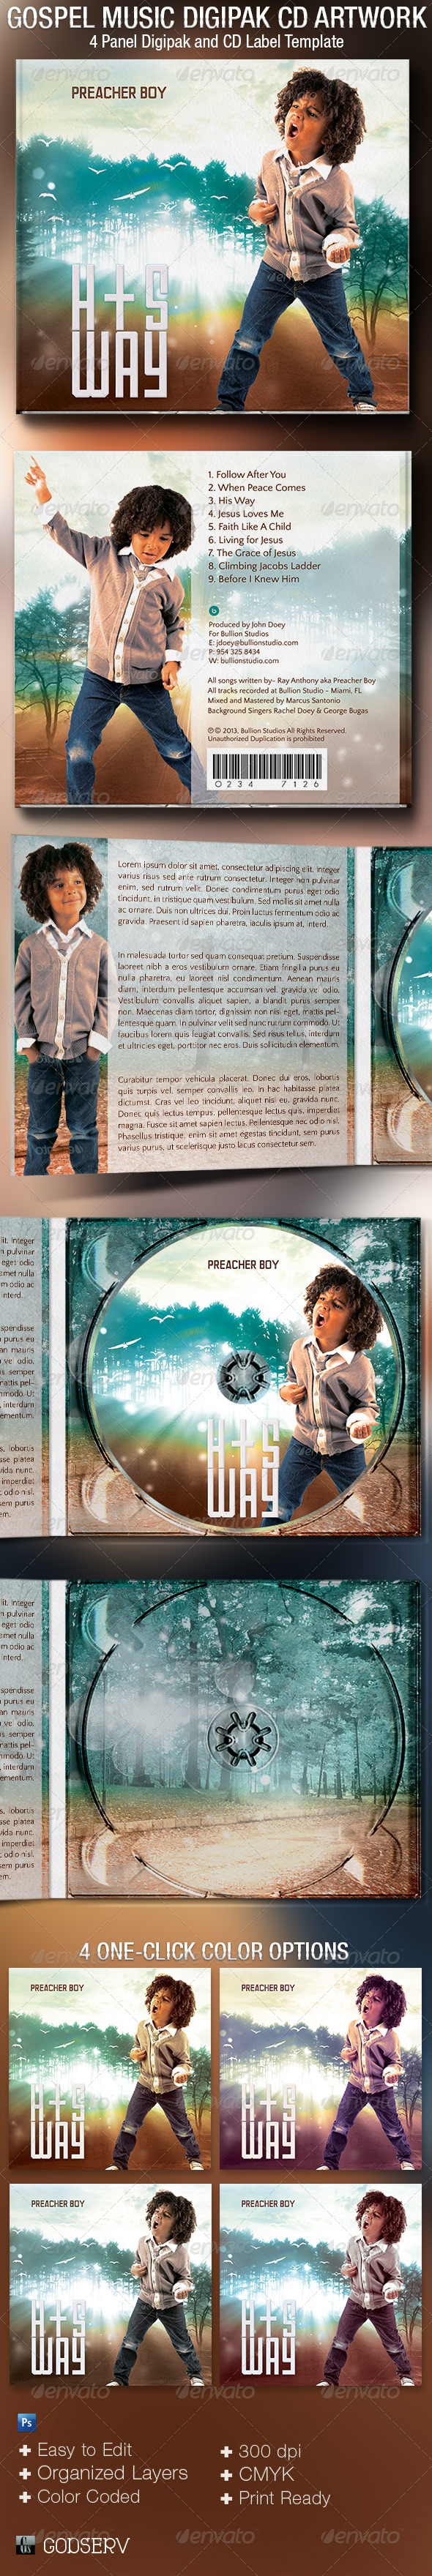 GraphicRiver Gospel Music 4 Panel Digipak CD Artwork Template 5378136